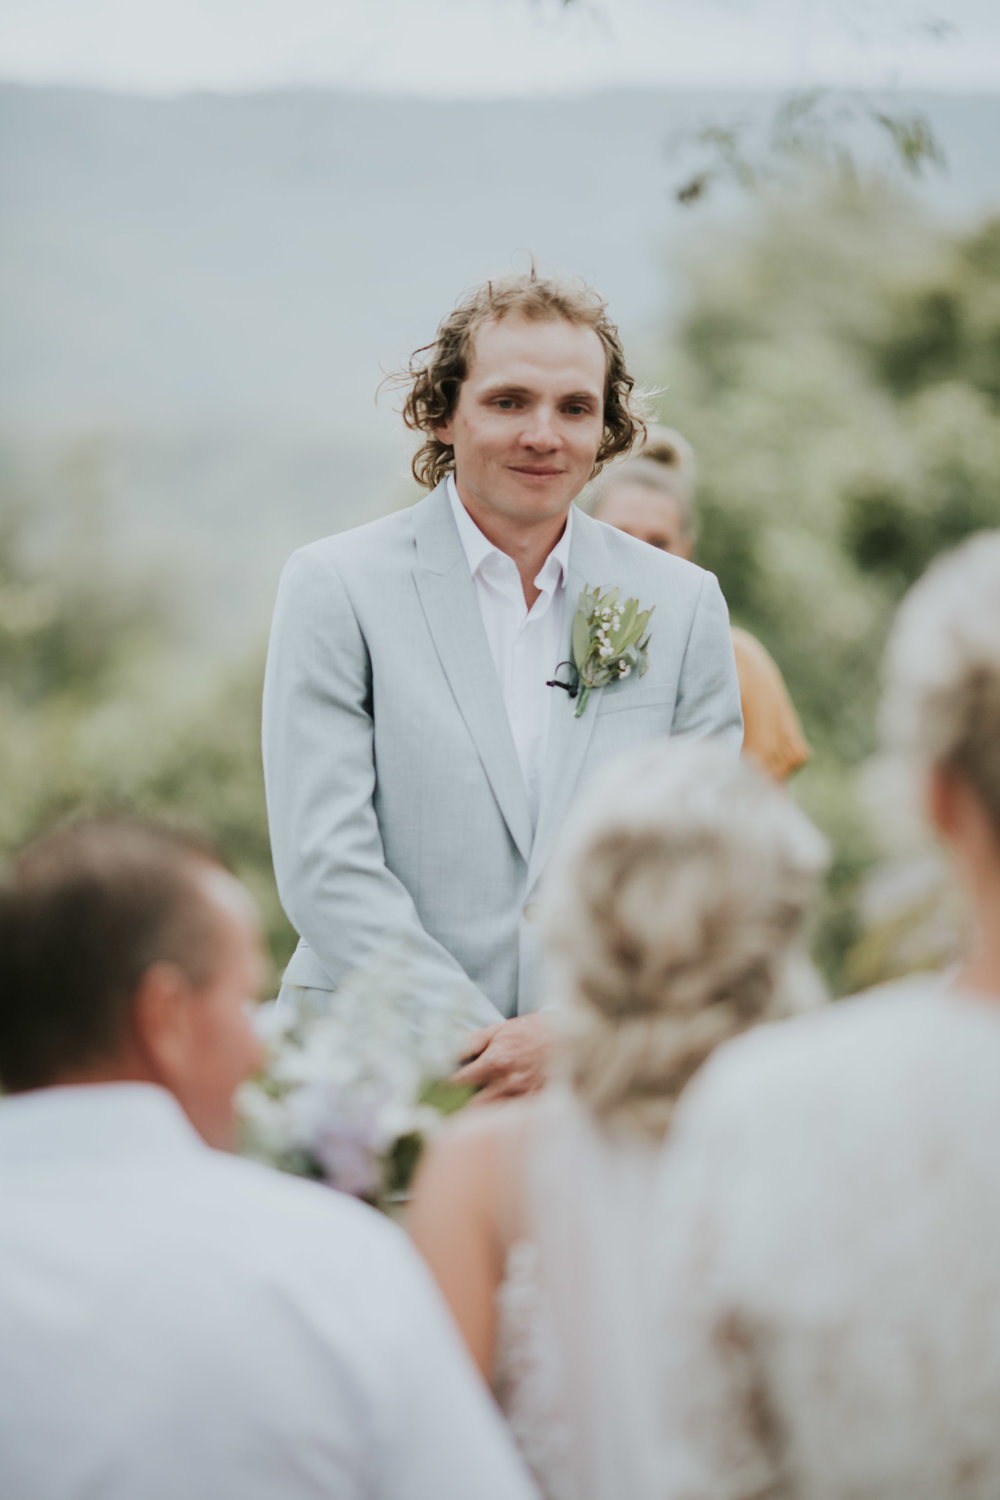 Jesse+Matt+Kangaroo+Valley+Wildwood+Boho+Relaxed+wedding+-98.jpg